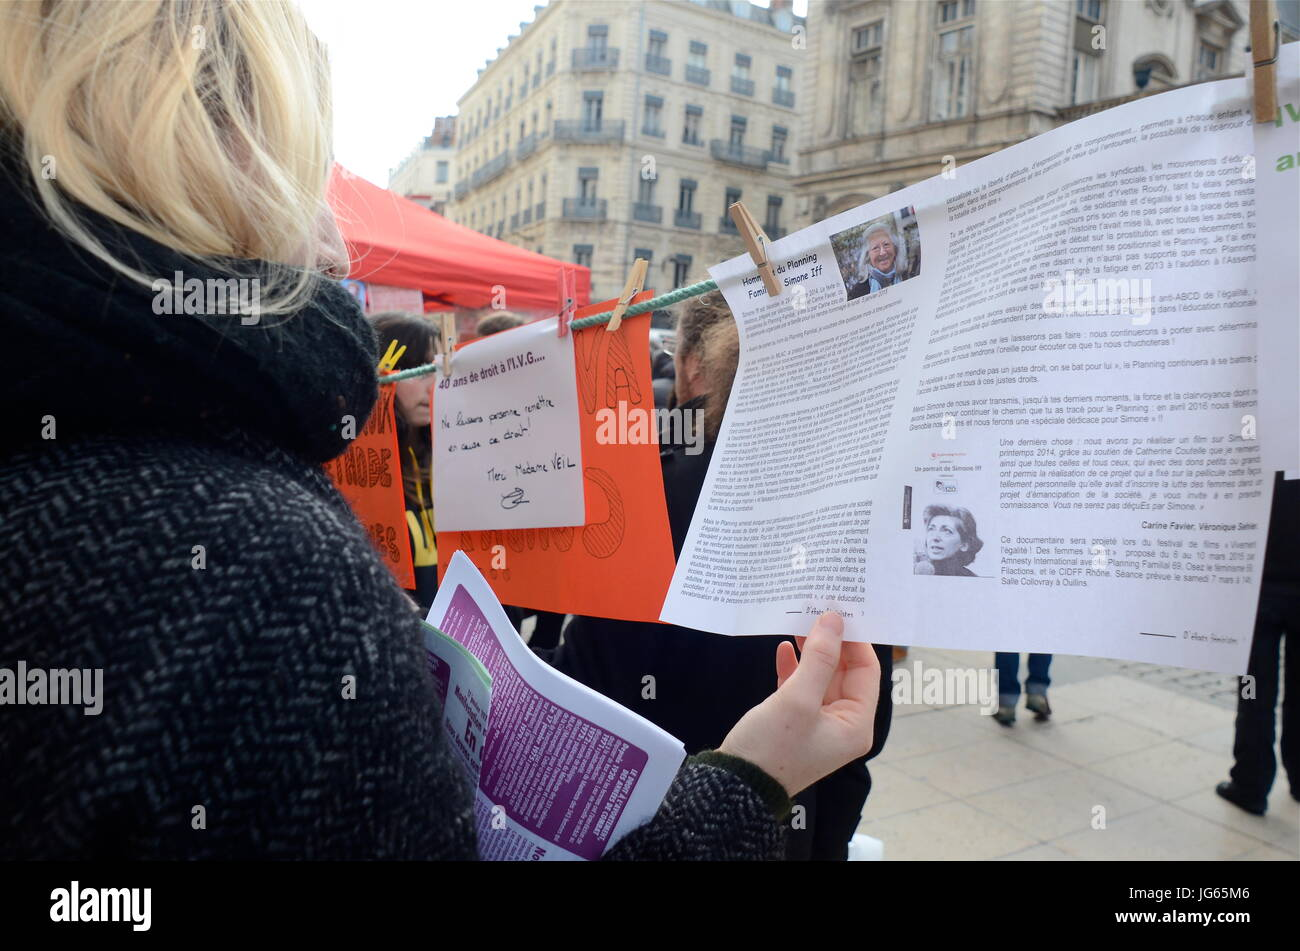 Women celevrate the 40th anniversary of IVG law, on Pregancy Interruption Lyon (France) - Stock Image